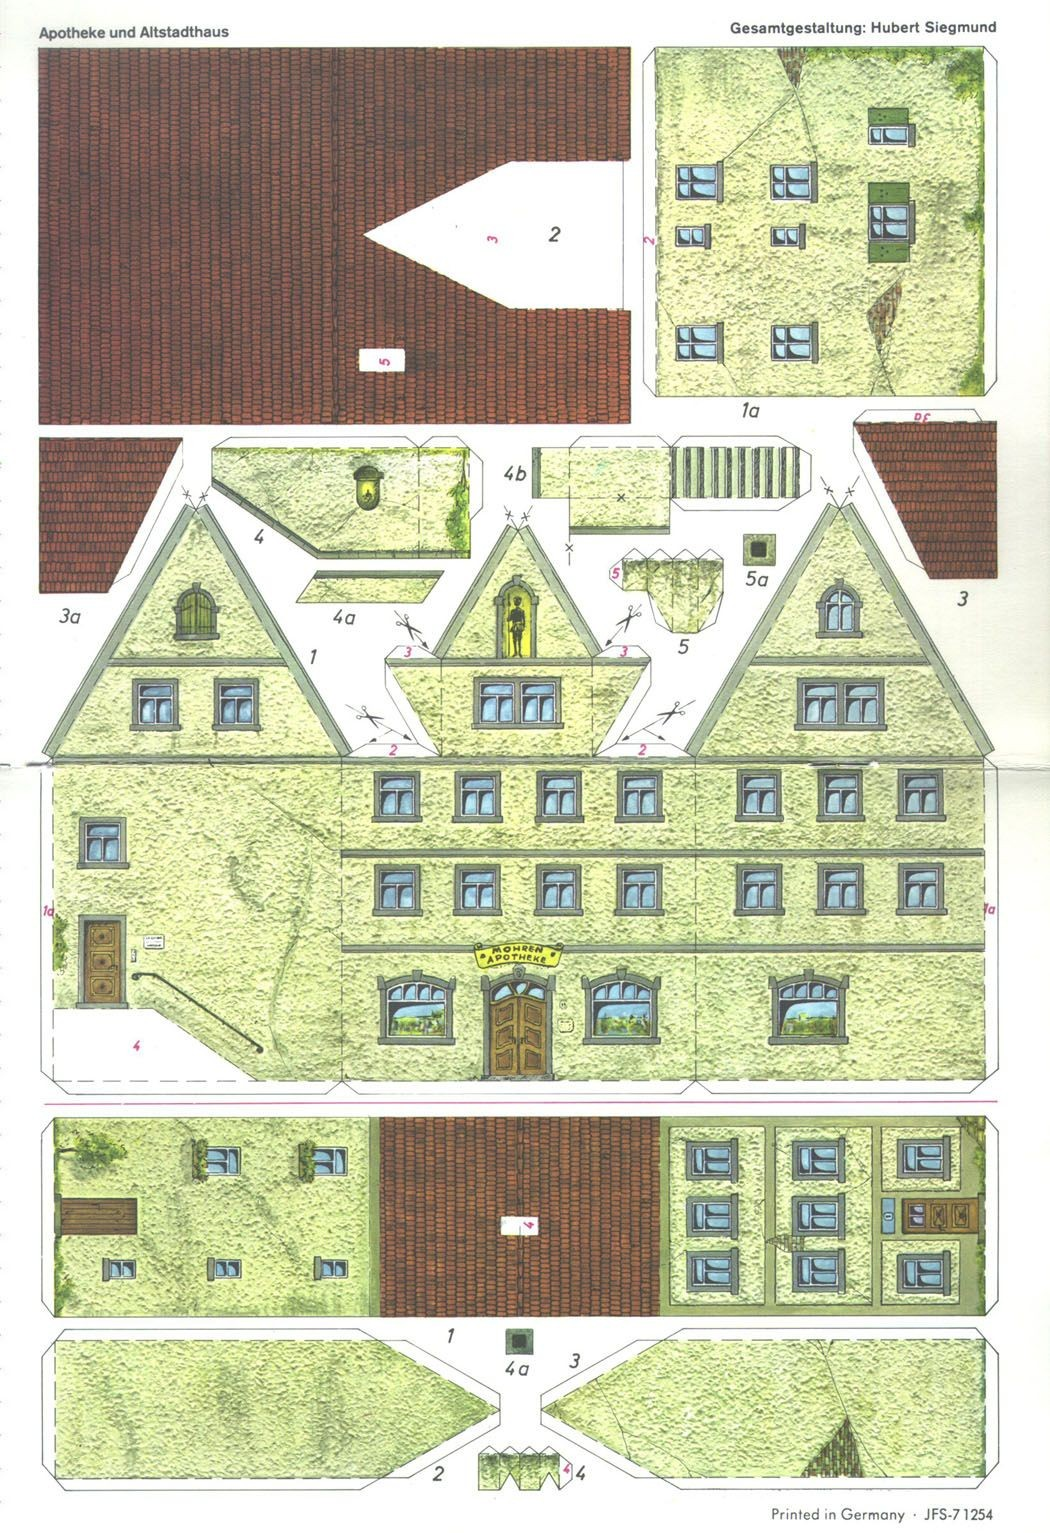 Papercraft Houses 1981 19 Bb 04 1 050—1 533 Pxeles